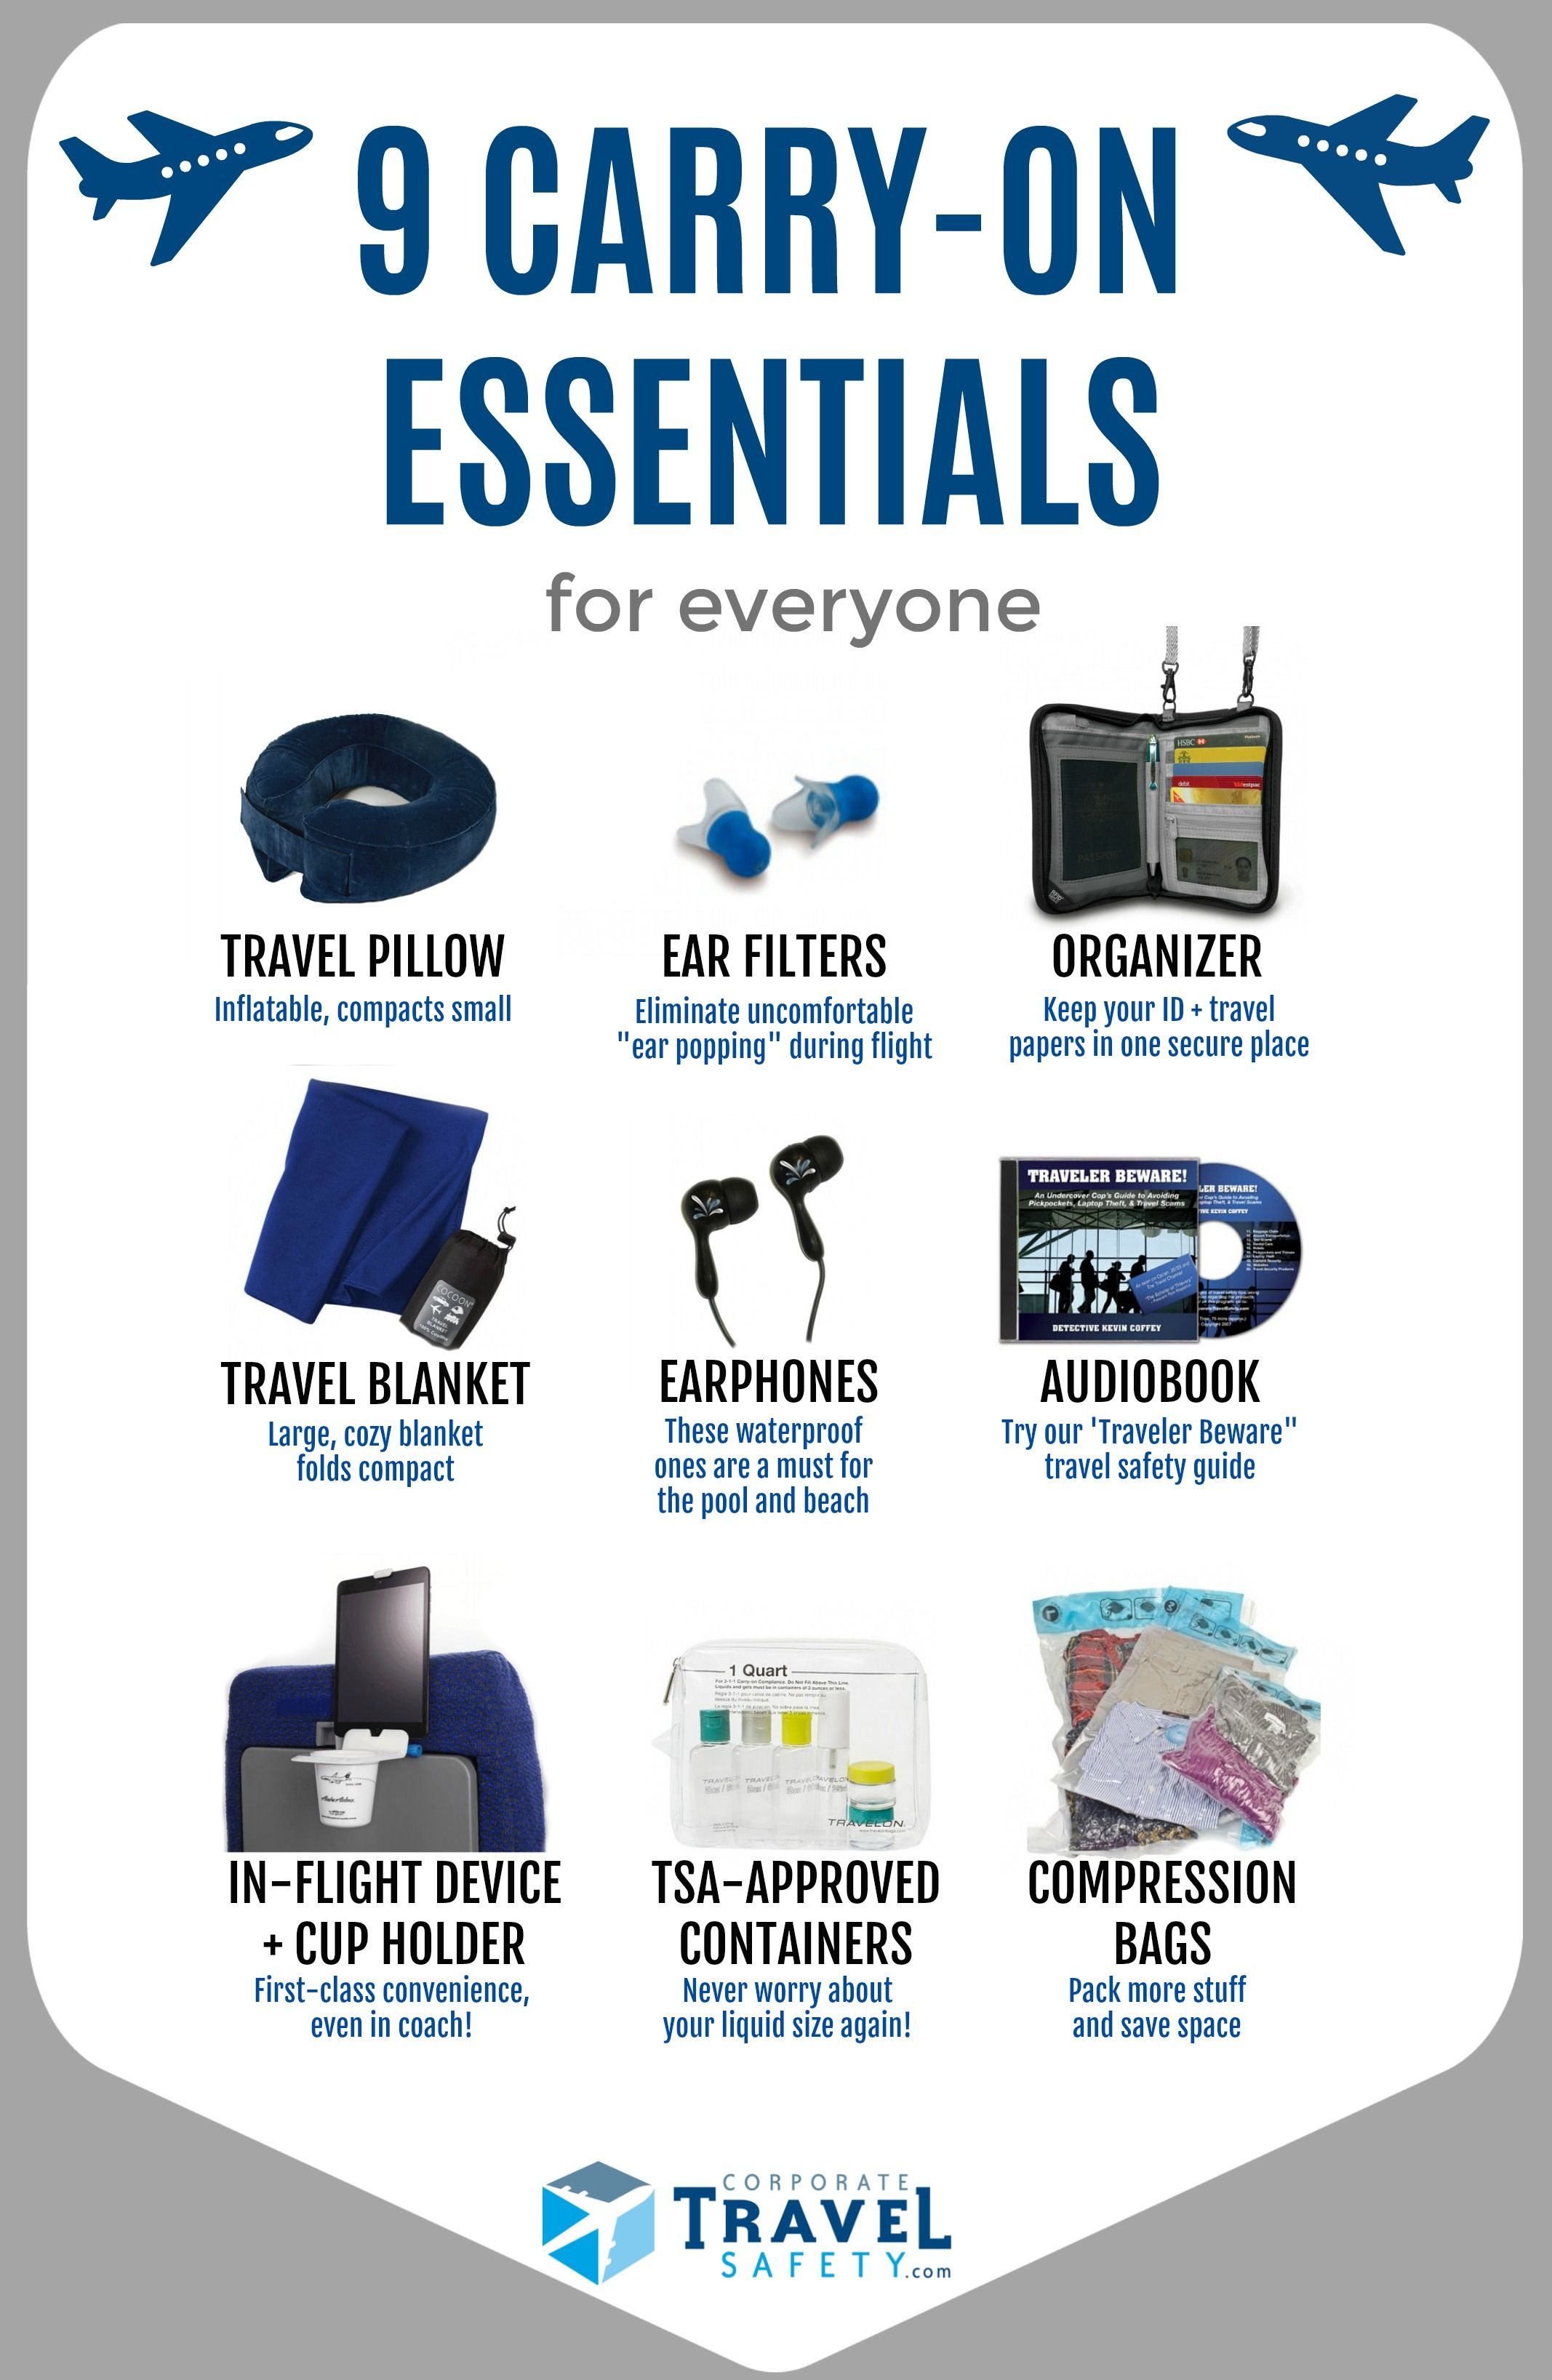 Top 10 Carry-On Essentials For A Smooth Flight | Carry on ...